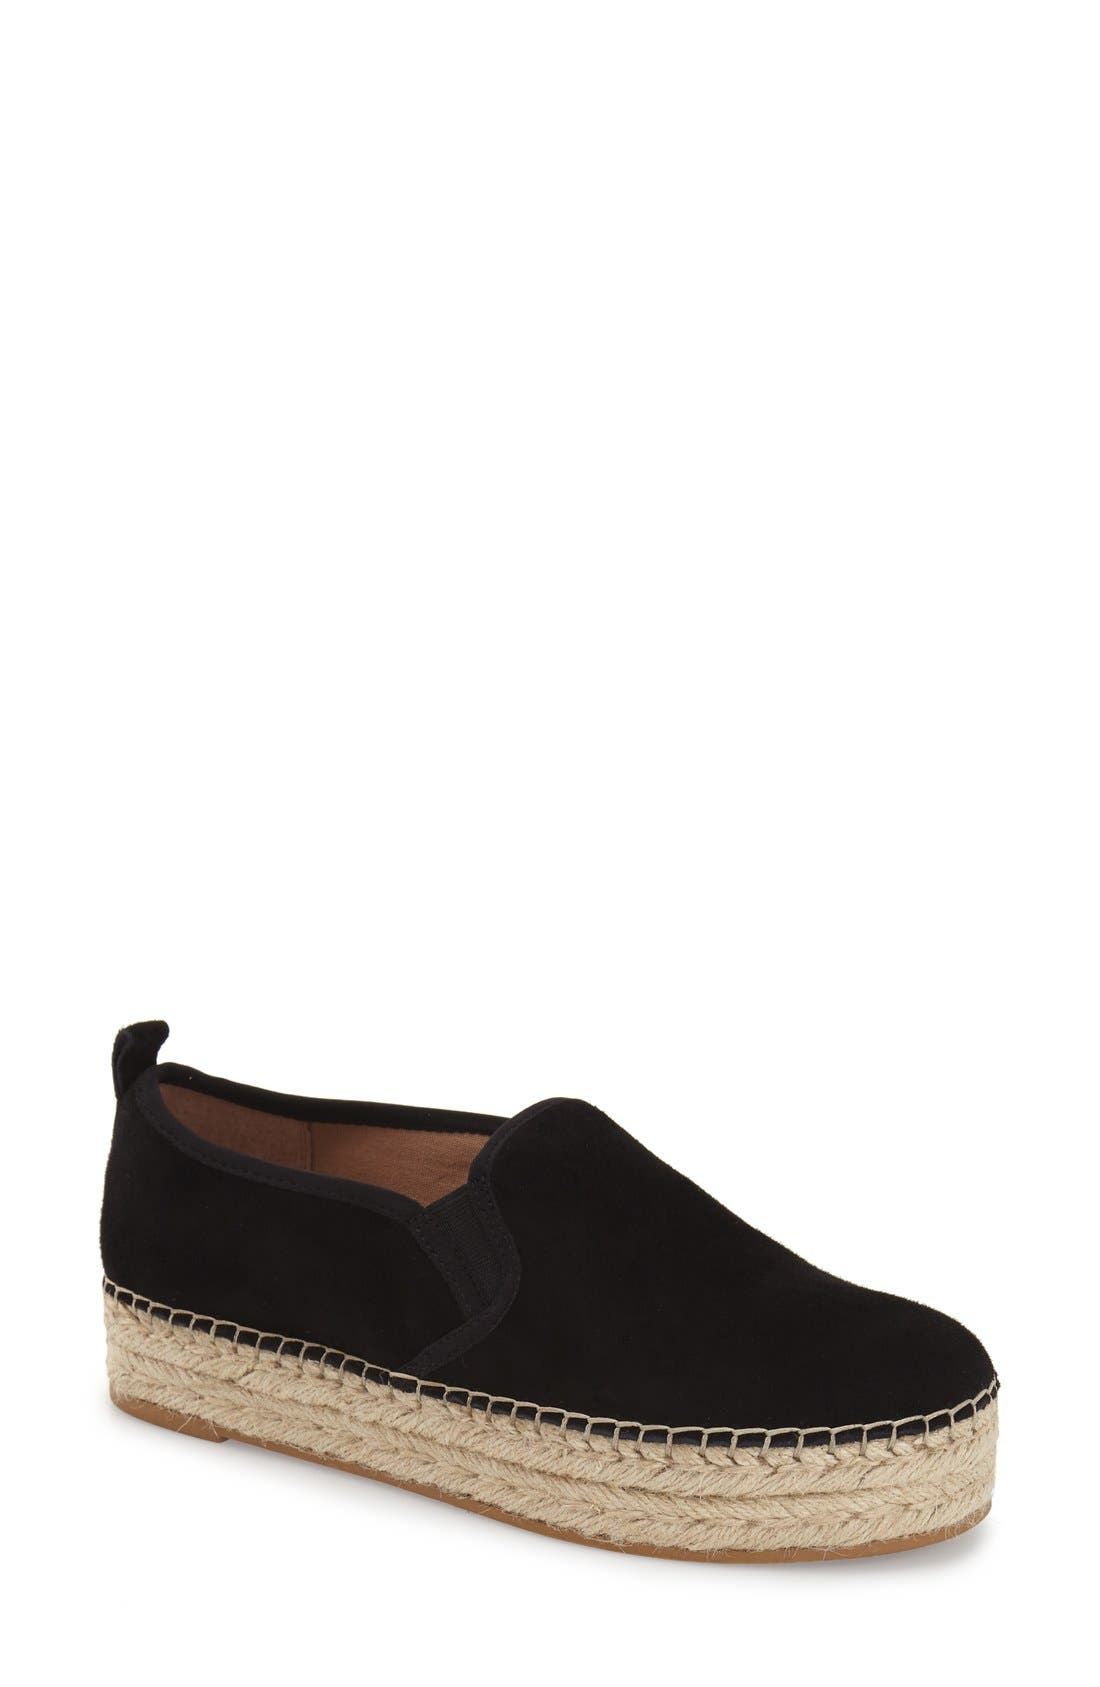 'Carrin' Espadrille Flat,                         Main,                         color, 001